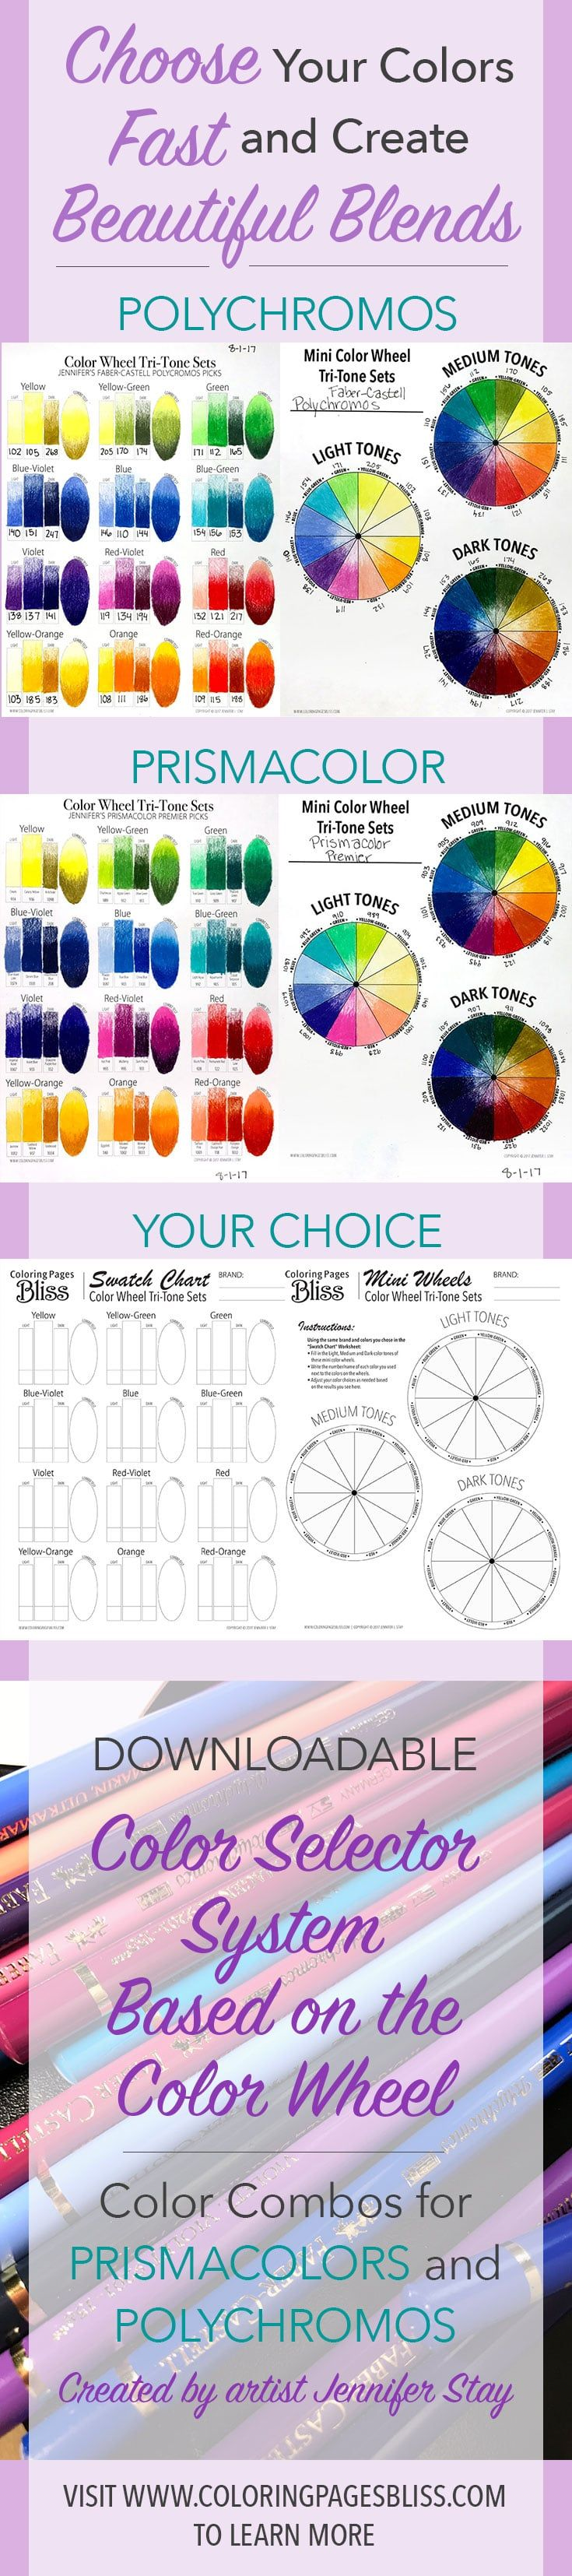 Choose colors fast with beautiful blends. This color wheel system will help you pick colors for your next coloring page. I have also included lots of great tips to help you learn more about color theory. Also get beautifully balanced color trios for Prismacolor Premier and Faber-Castell Polychromos. So much value here to bring your coloring to the next level.